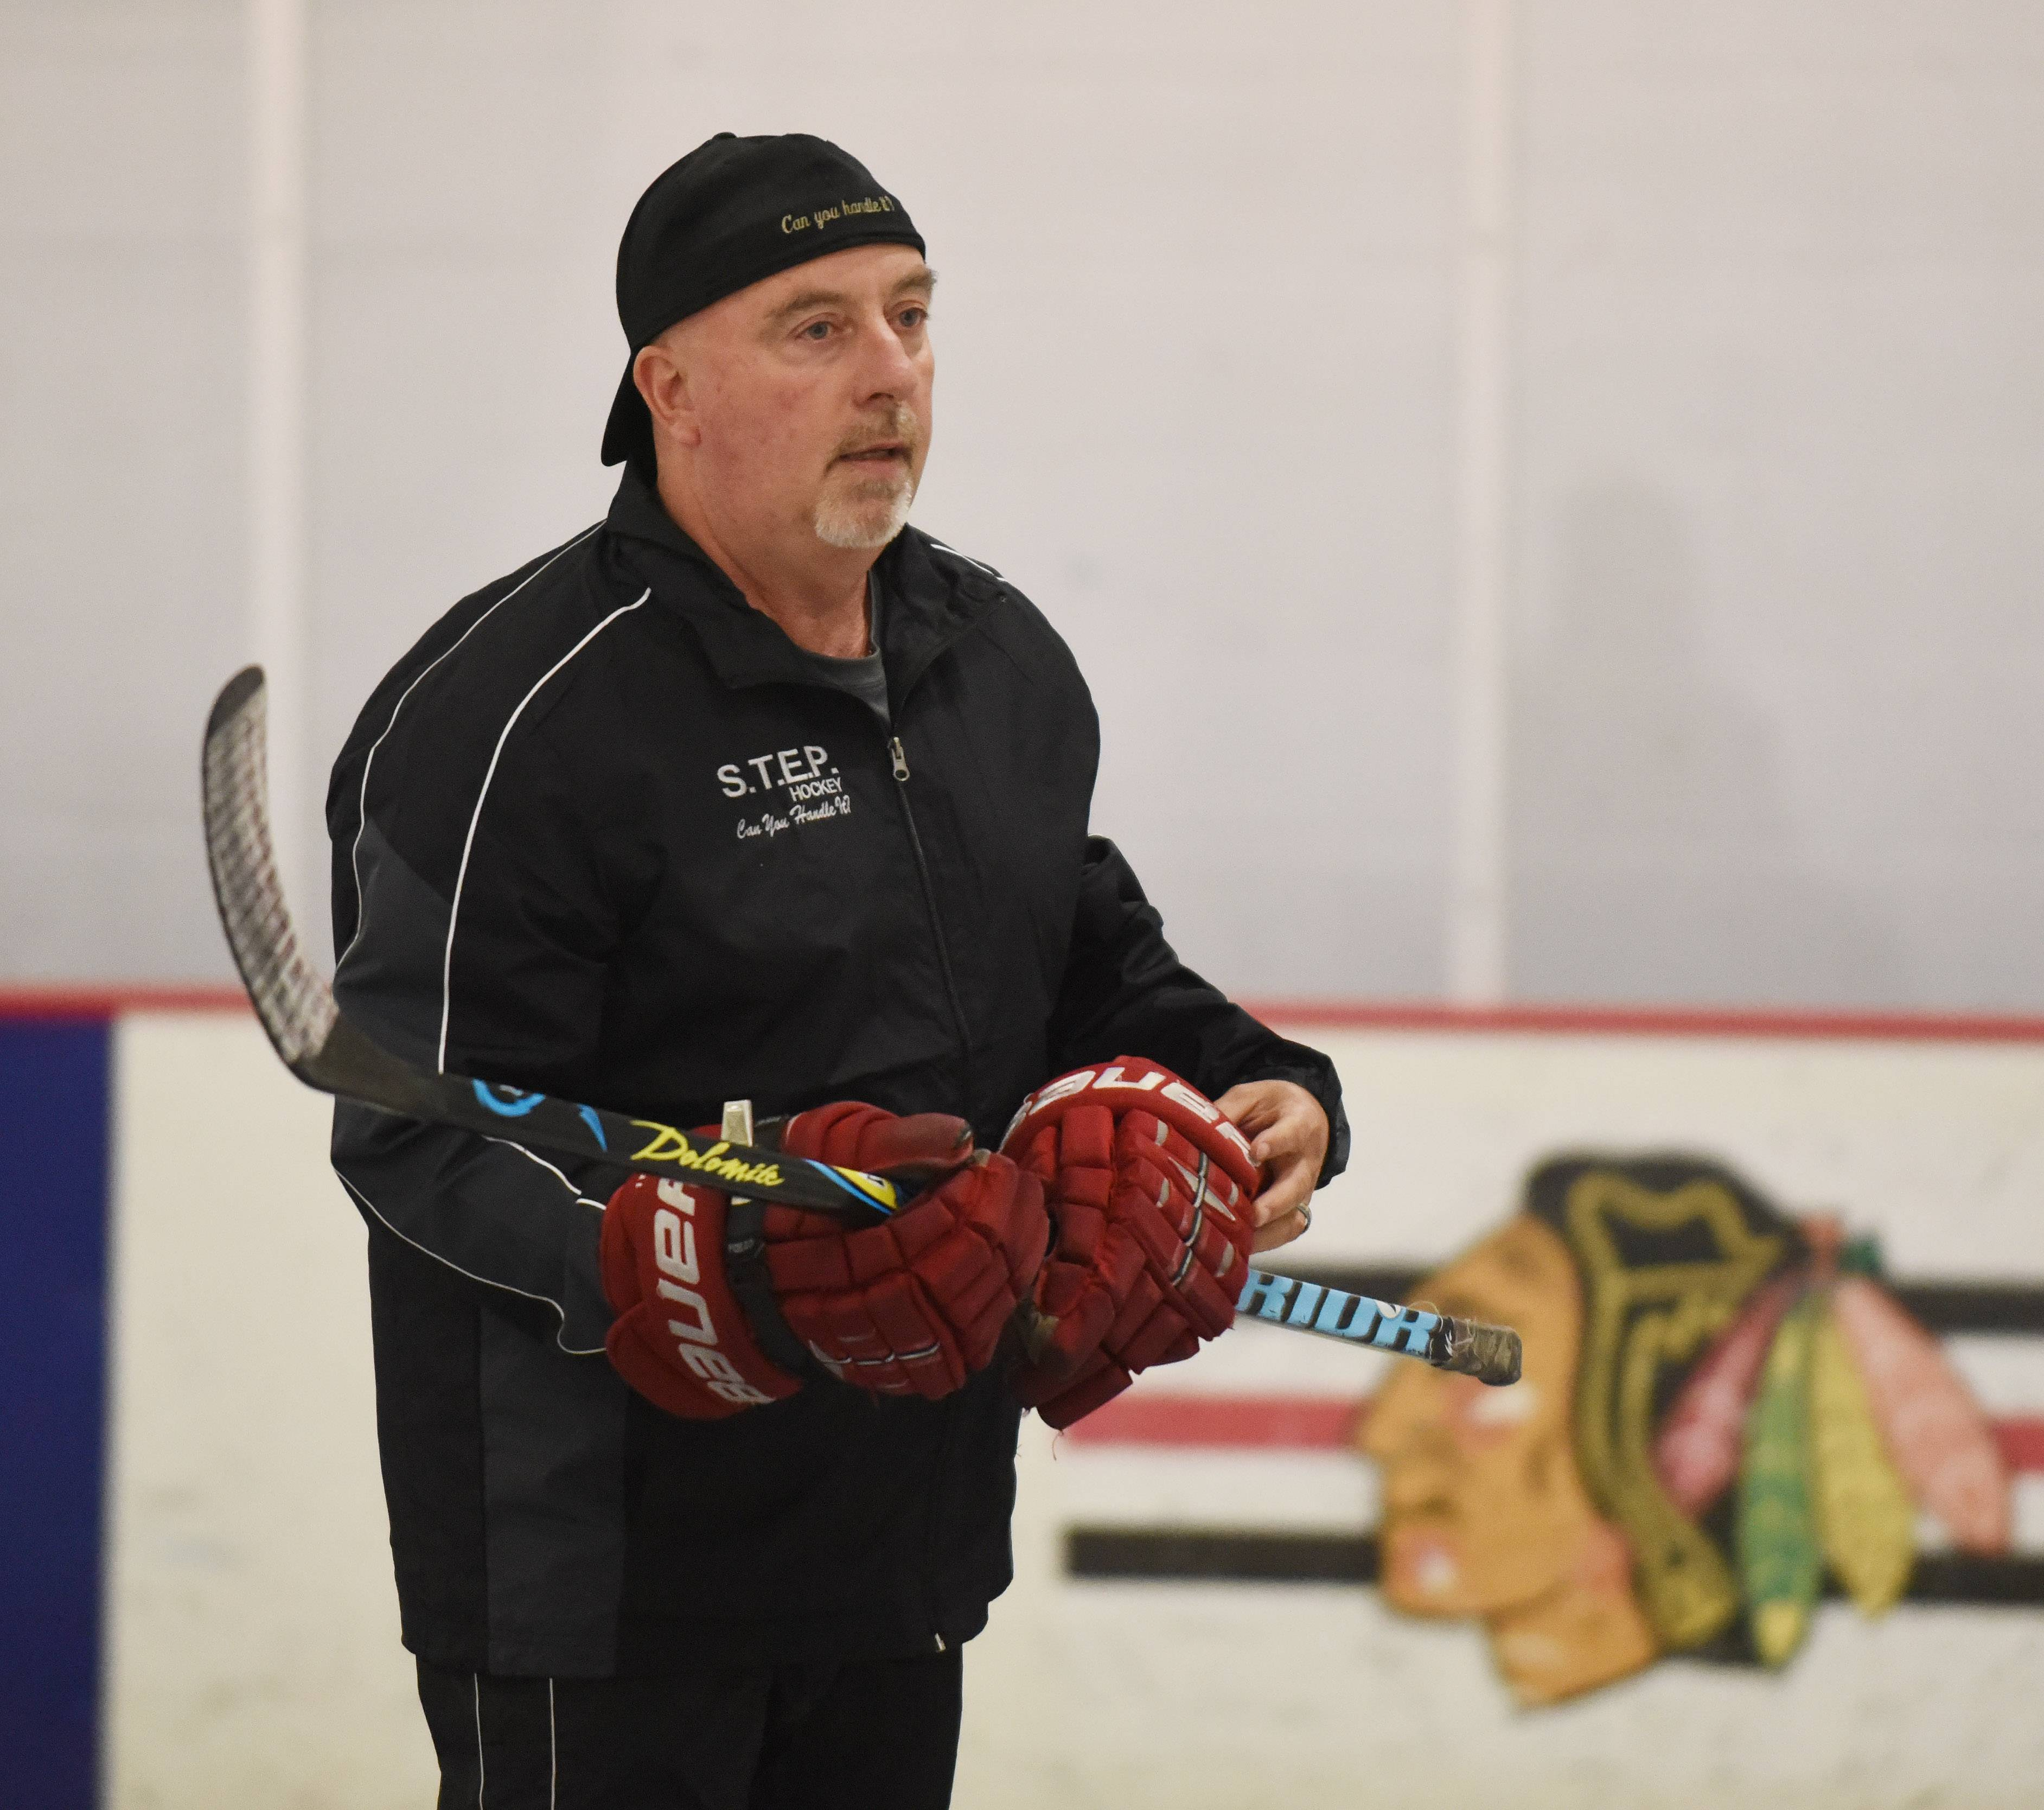 Suburban hockey coaches and parents, including Sylvain Turcotte of Buffalo Grove, say the situation involving Blackhawks star Patrick Kane could be complicated to explain to young players who look up to him.